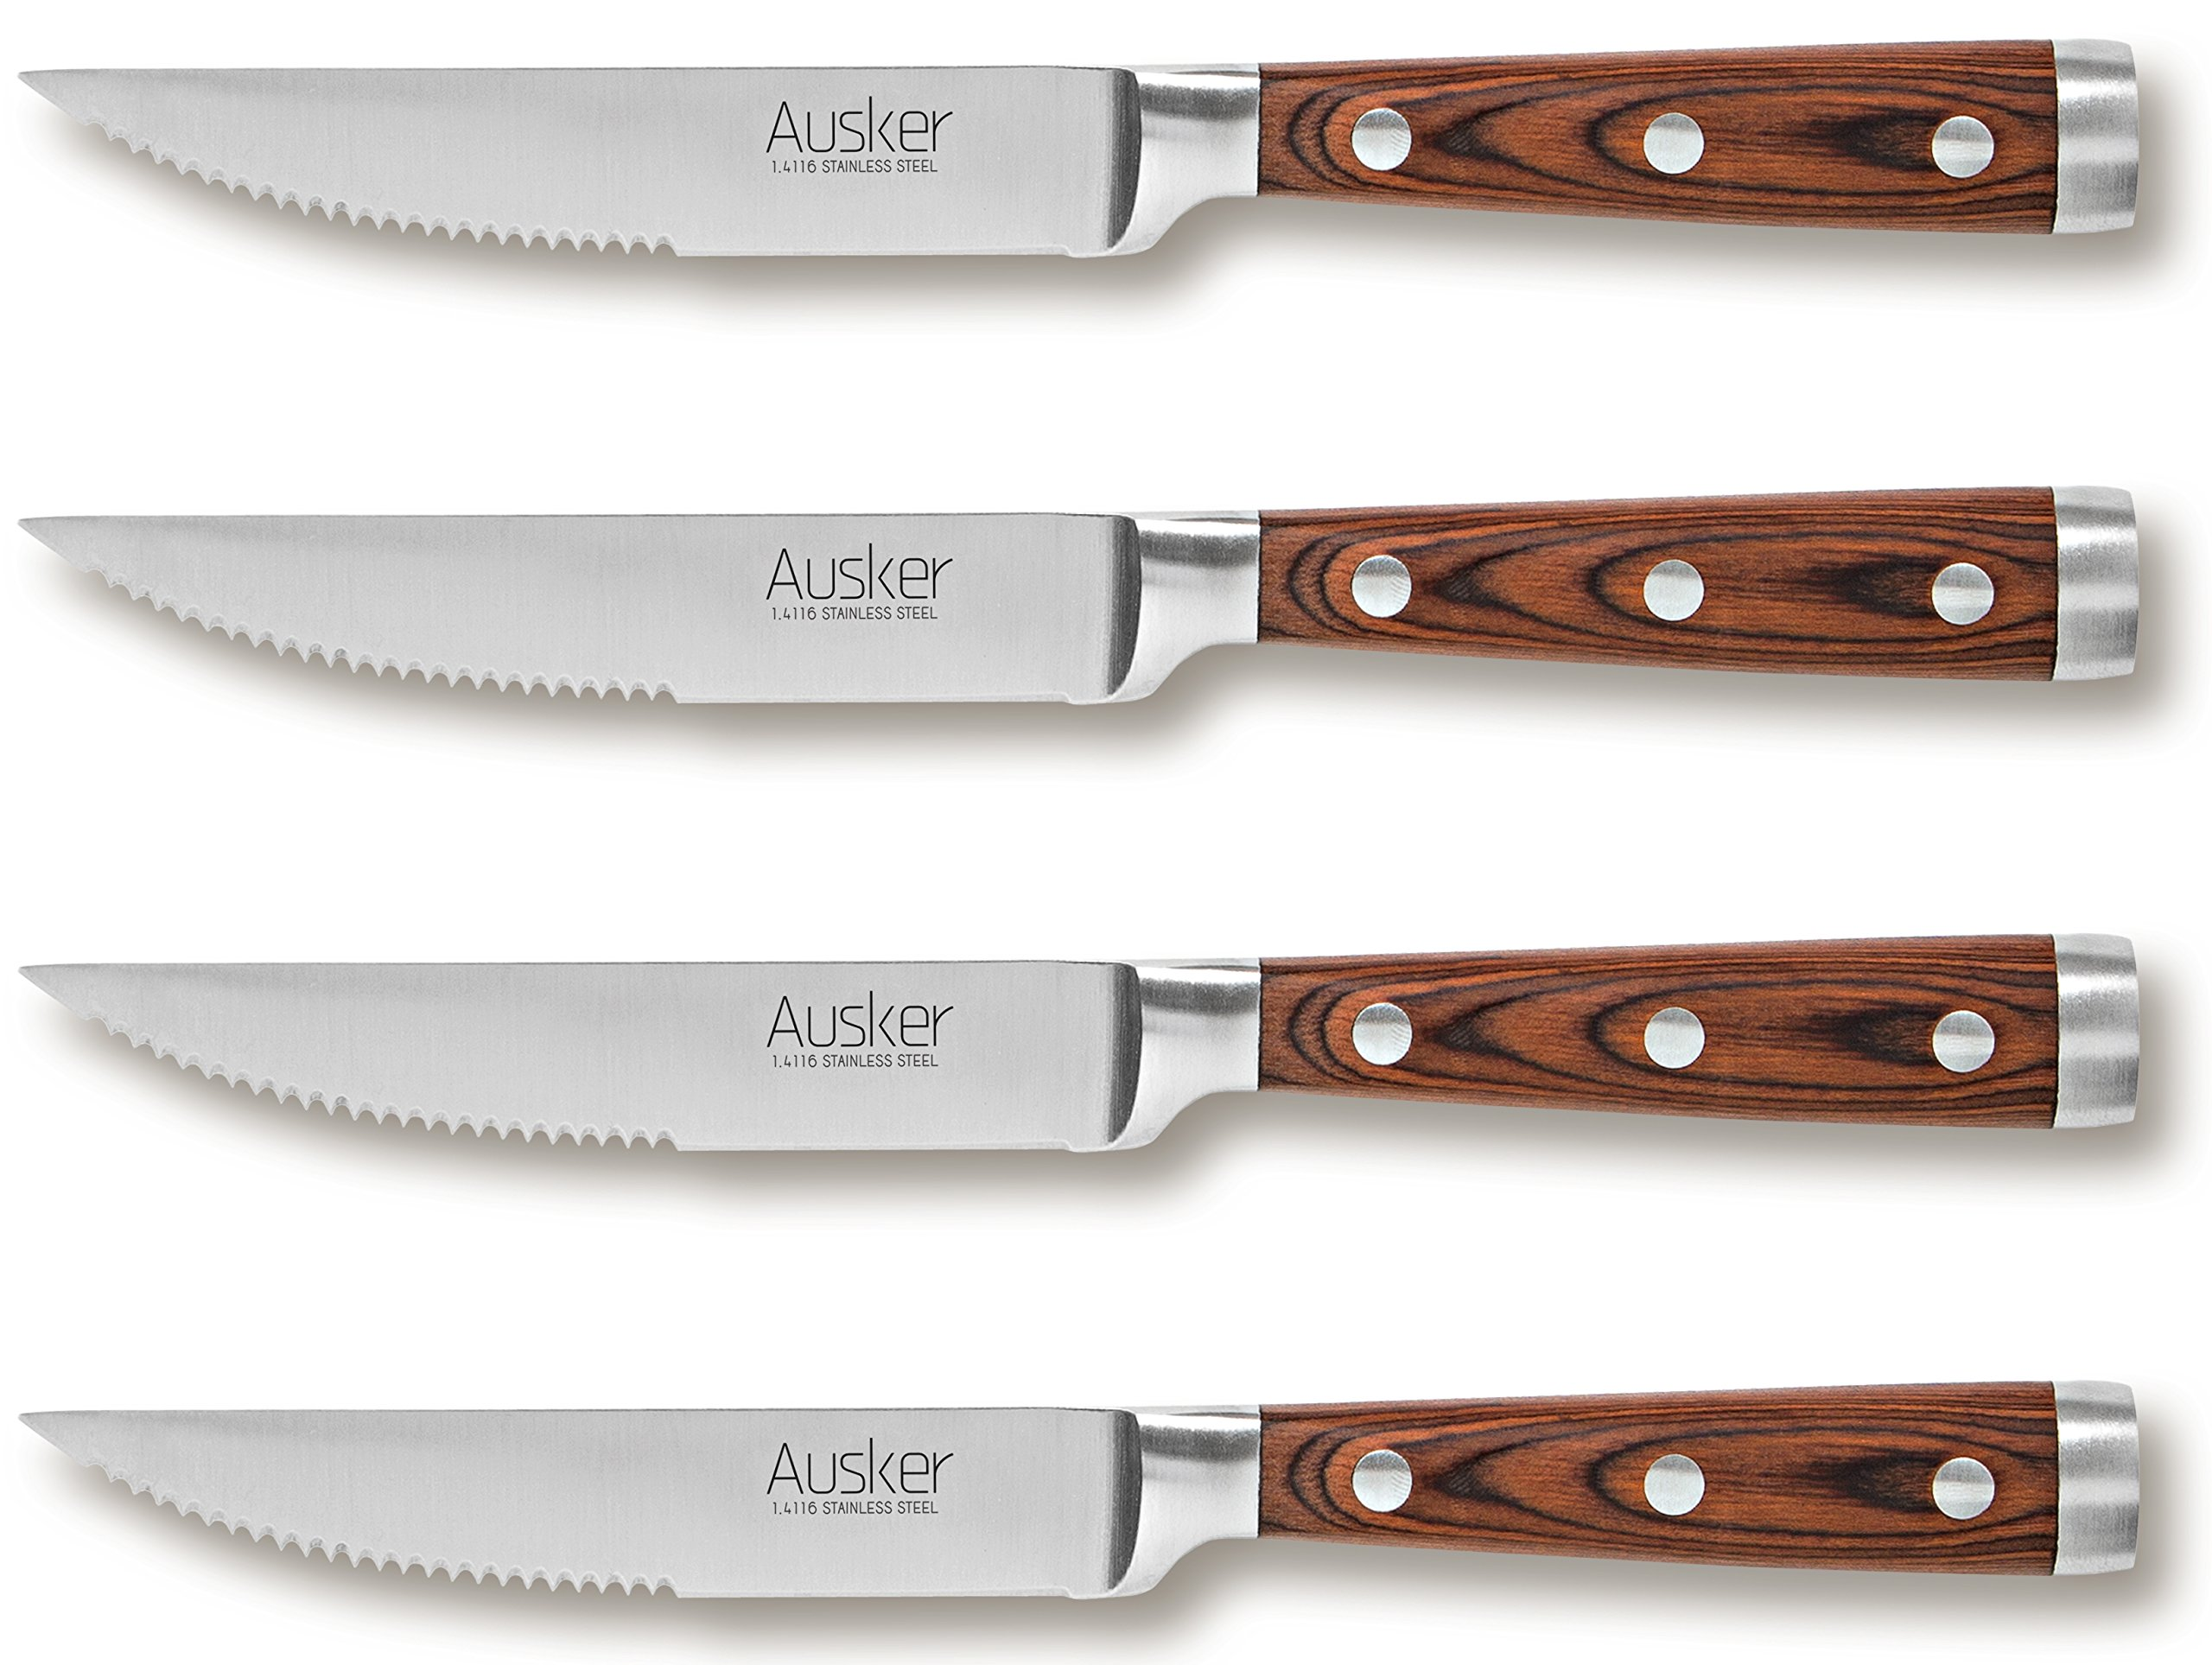 Ausker Steak Knife Set, Stainless Steel with Highly Resistant and Durable Pakkawood Handle, for Pizza or Steak (Pack of 4) by Ausker